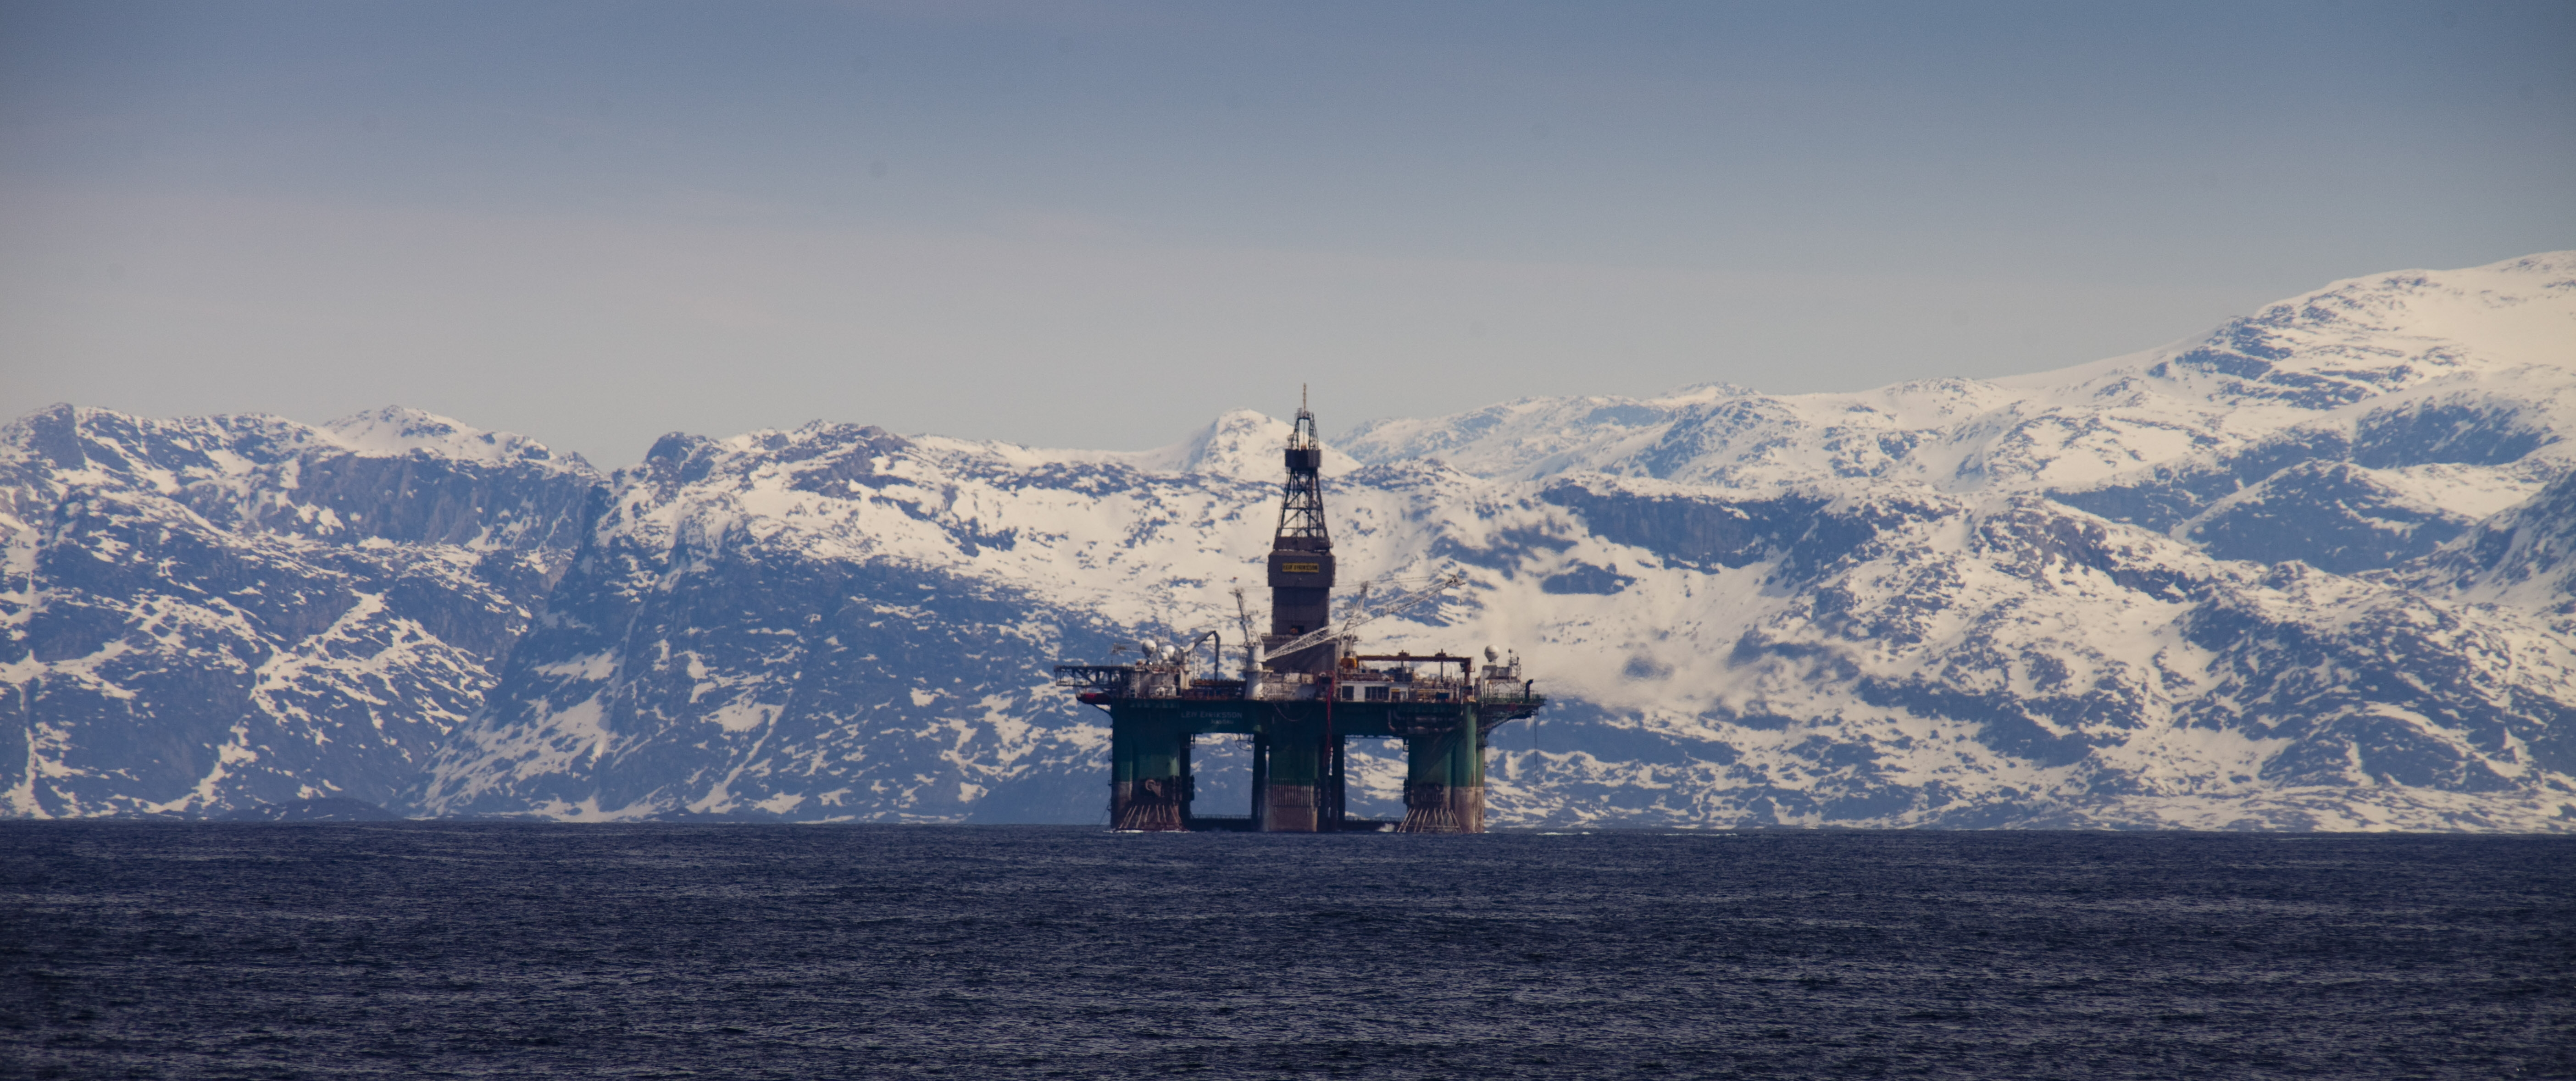 How to Extract Oil in the Arctic